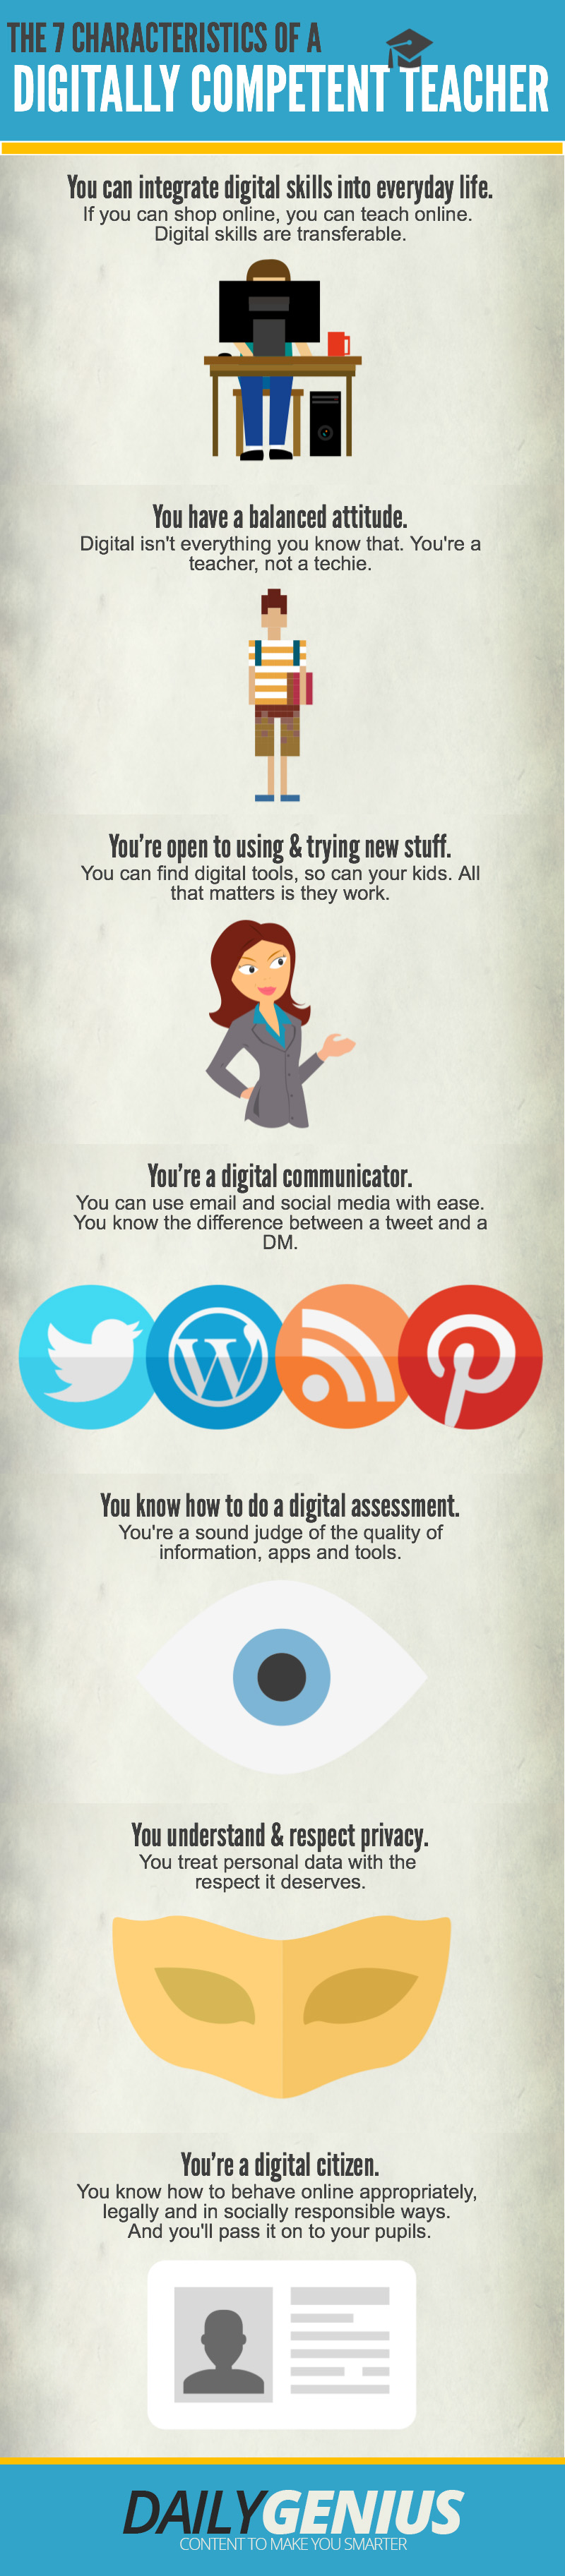 The Characteristics of a Digitally Competent Teacher-